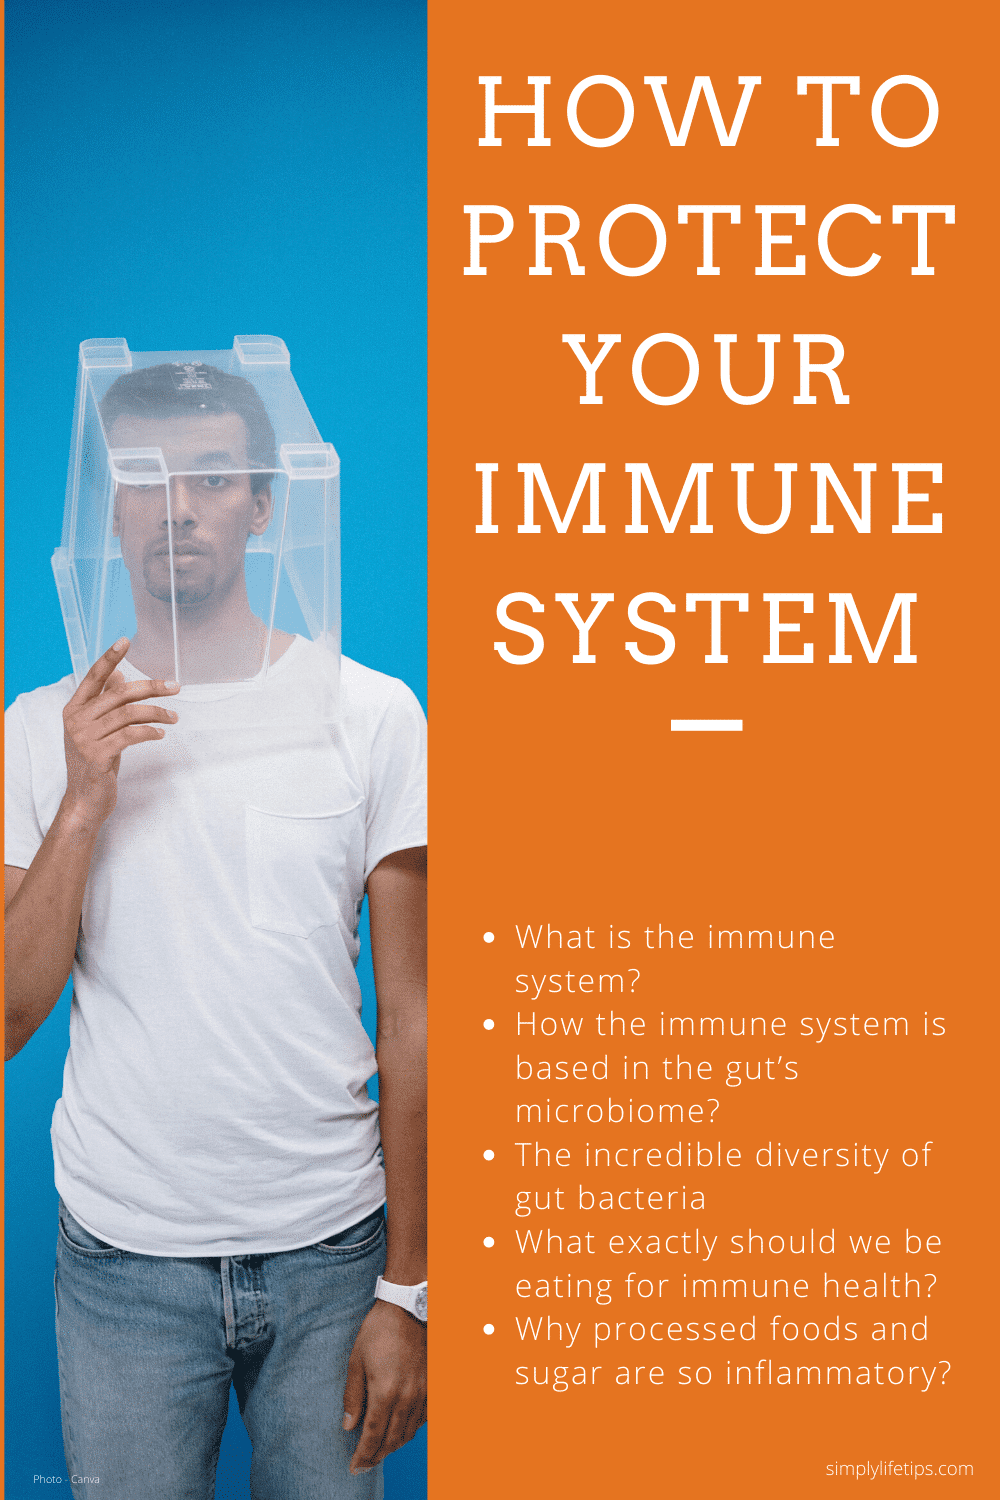 Protect Your Immune System